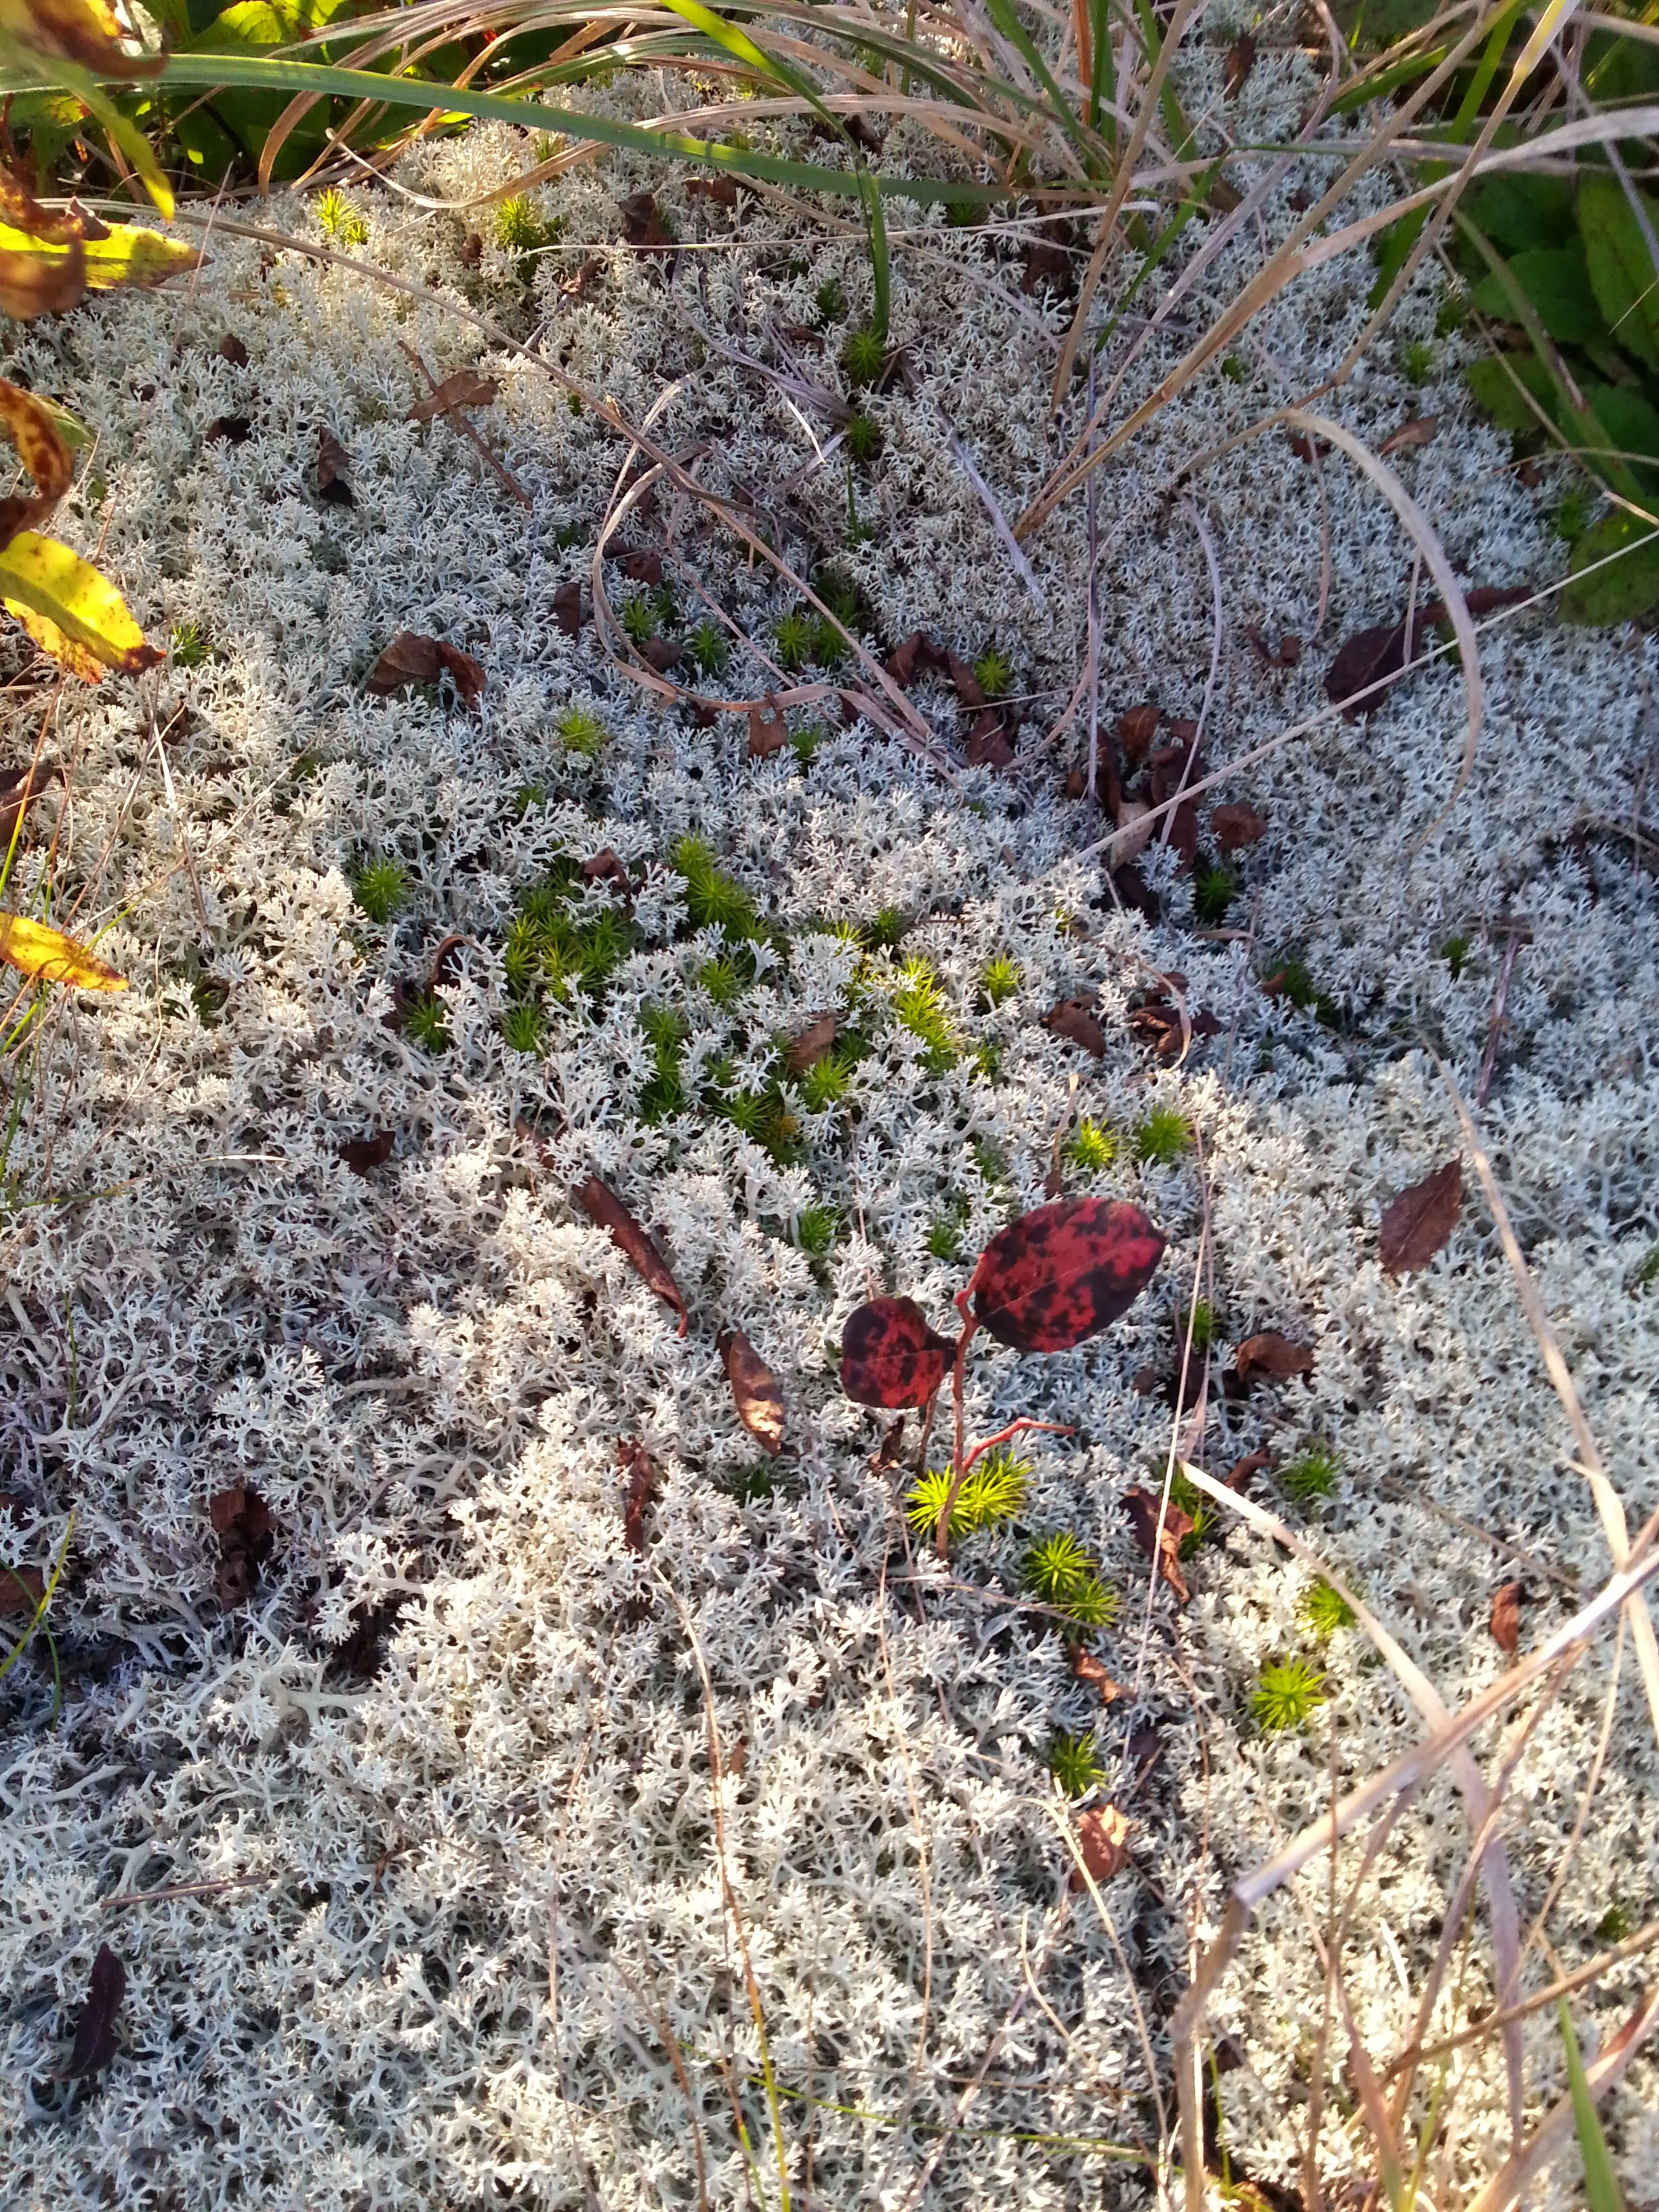 Reindeer Moss (the white stuff) and Sphagnum Moss (the green stuff)